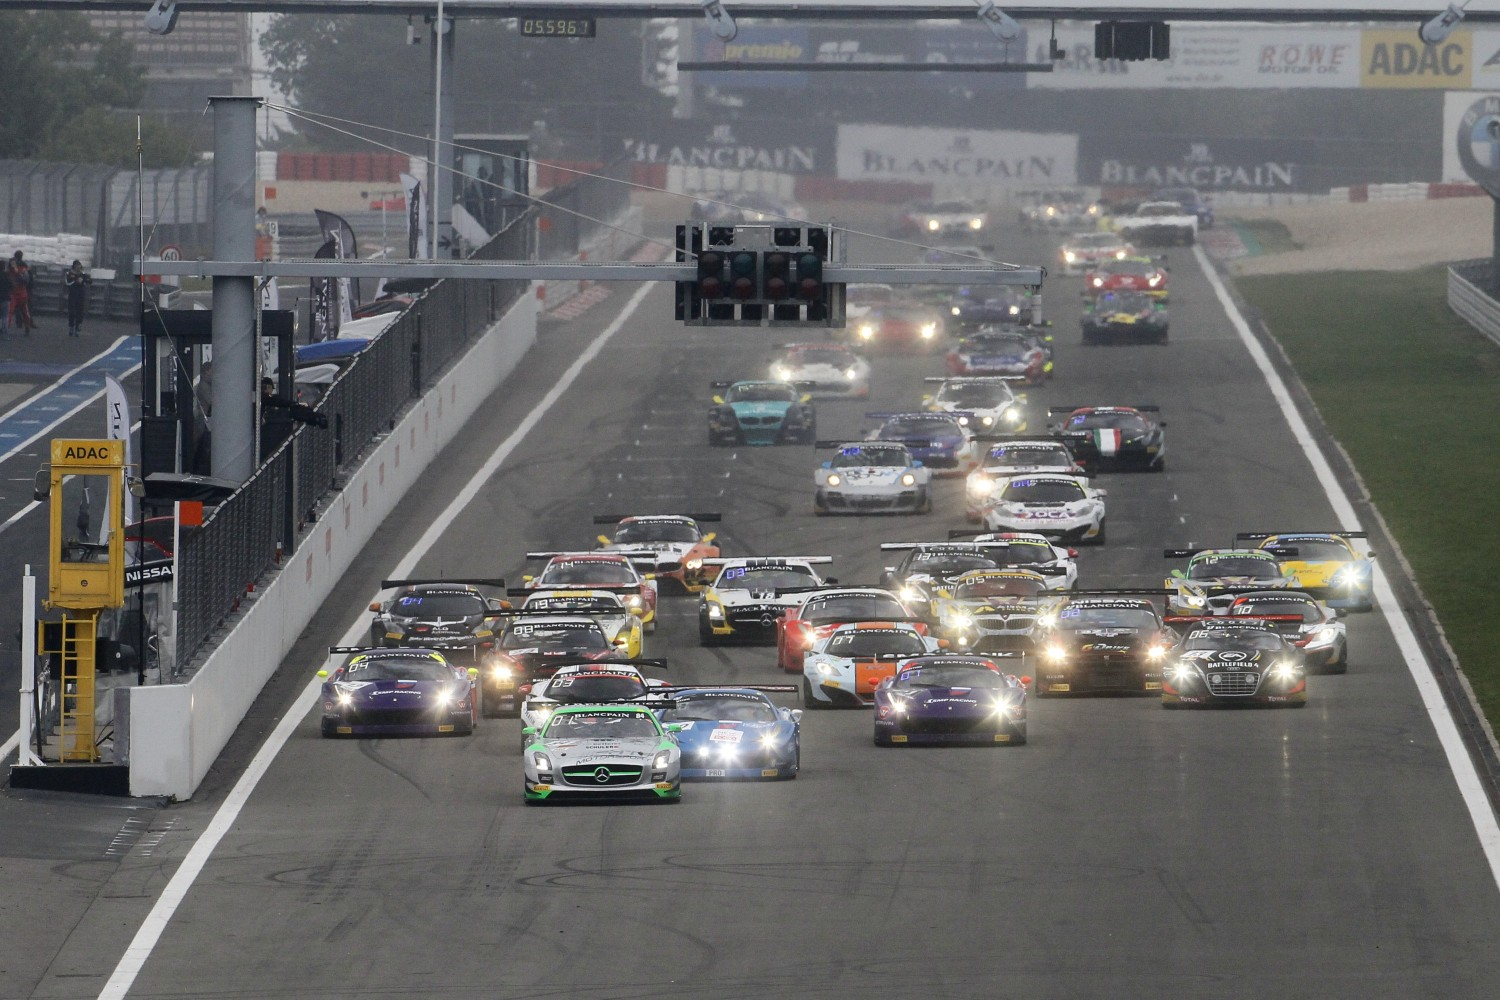 iRacing.com Nürburgring 1000 to decide 2014 Blancpain Endurance Titles